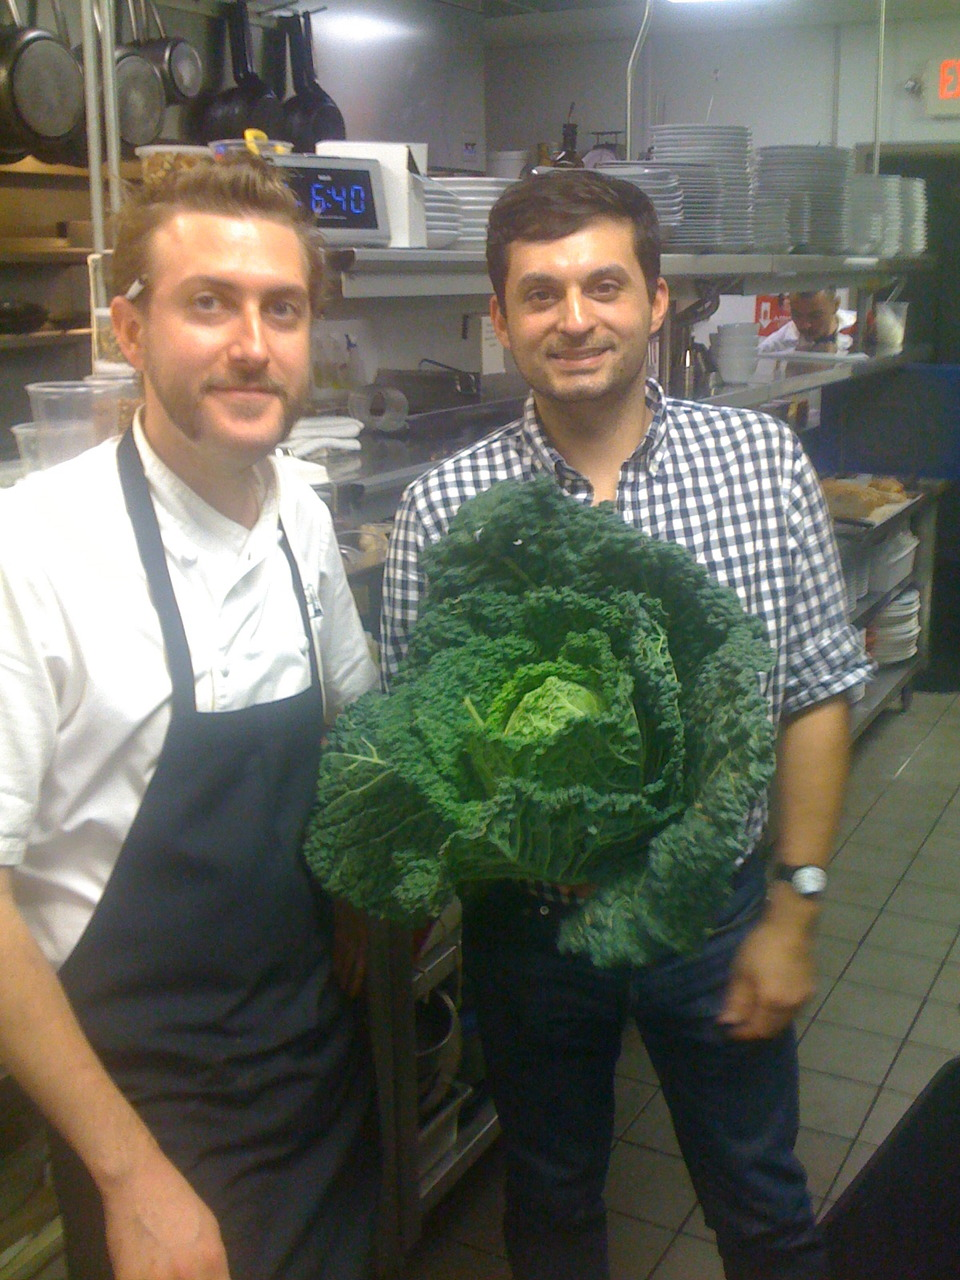 Patrick Stubbers (sous chef at The National), me, and a beautiful savoy cabbage (a gift from our farmer friend, Michael McMullen)